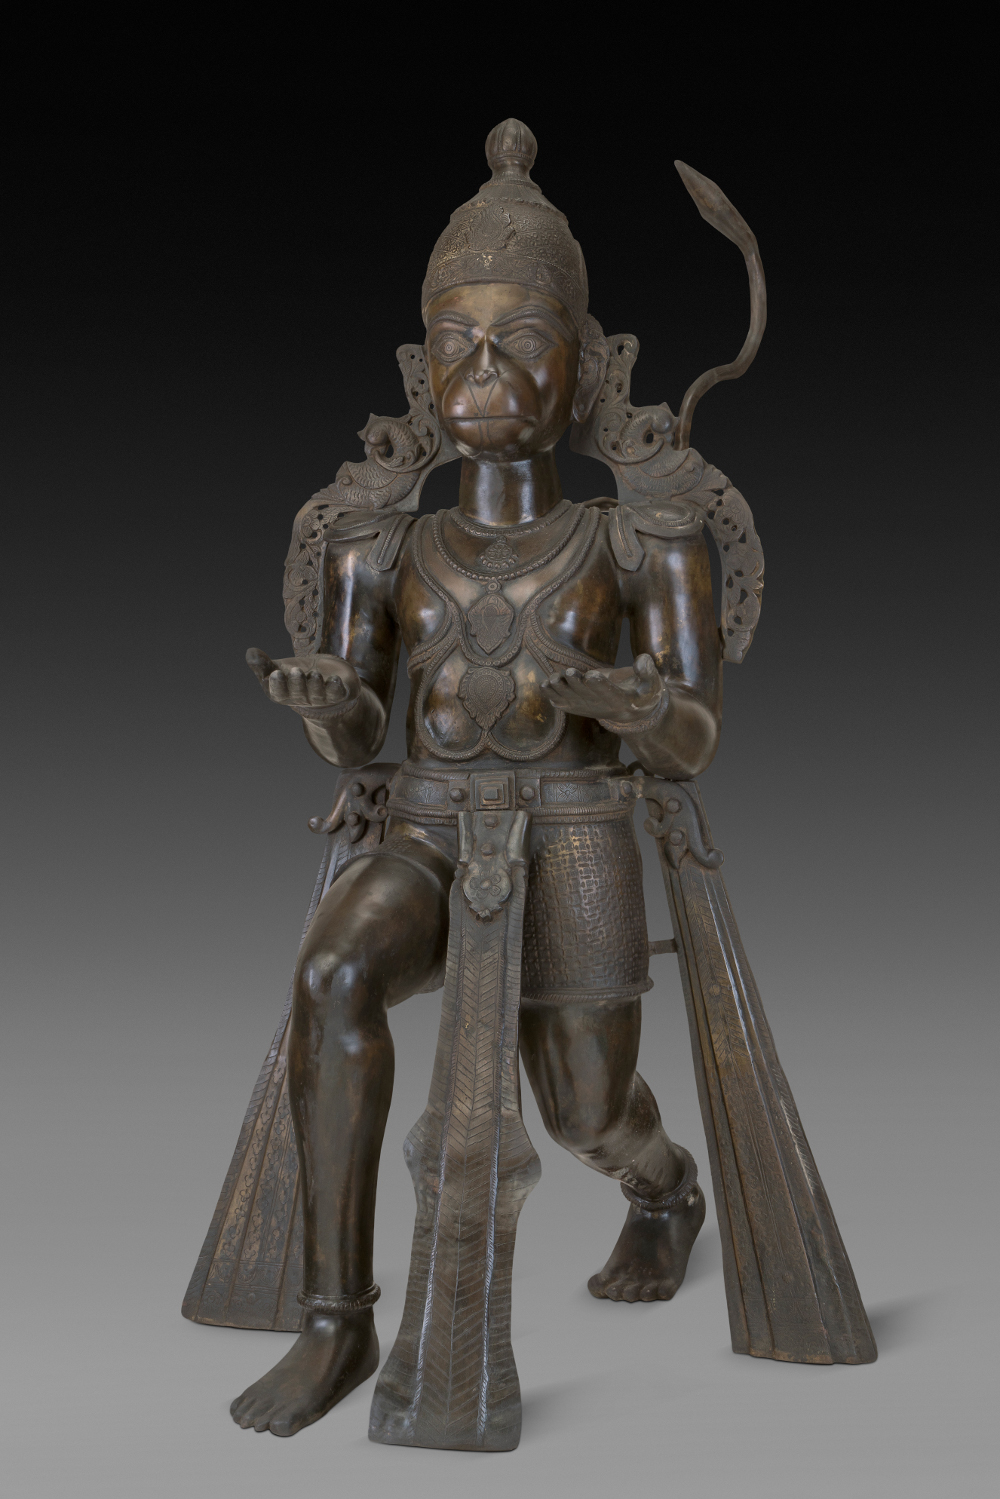 Hanuman - BronzeProbably 20th centuryAndhra Pradesh, IndiaCrafts MuseumHanuman is a monkey or vanara (forest being) who aided Rama – the fifth incarnation of Vishnu and the hero of the epic Ramayana. He was possessed of supernatural strength, steadfast loyalty and bravery, and is usually depicted as partly human. His example provides one reason why celibacy (brahmacharya) is admired and considered an aide to physical prowess and mental strength. Hanuman remains one of the most popular deities of Hindu worship and is the patron deity of traditional Indian gymnasiums or akhadhas.